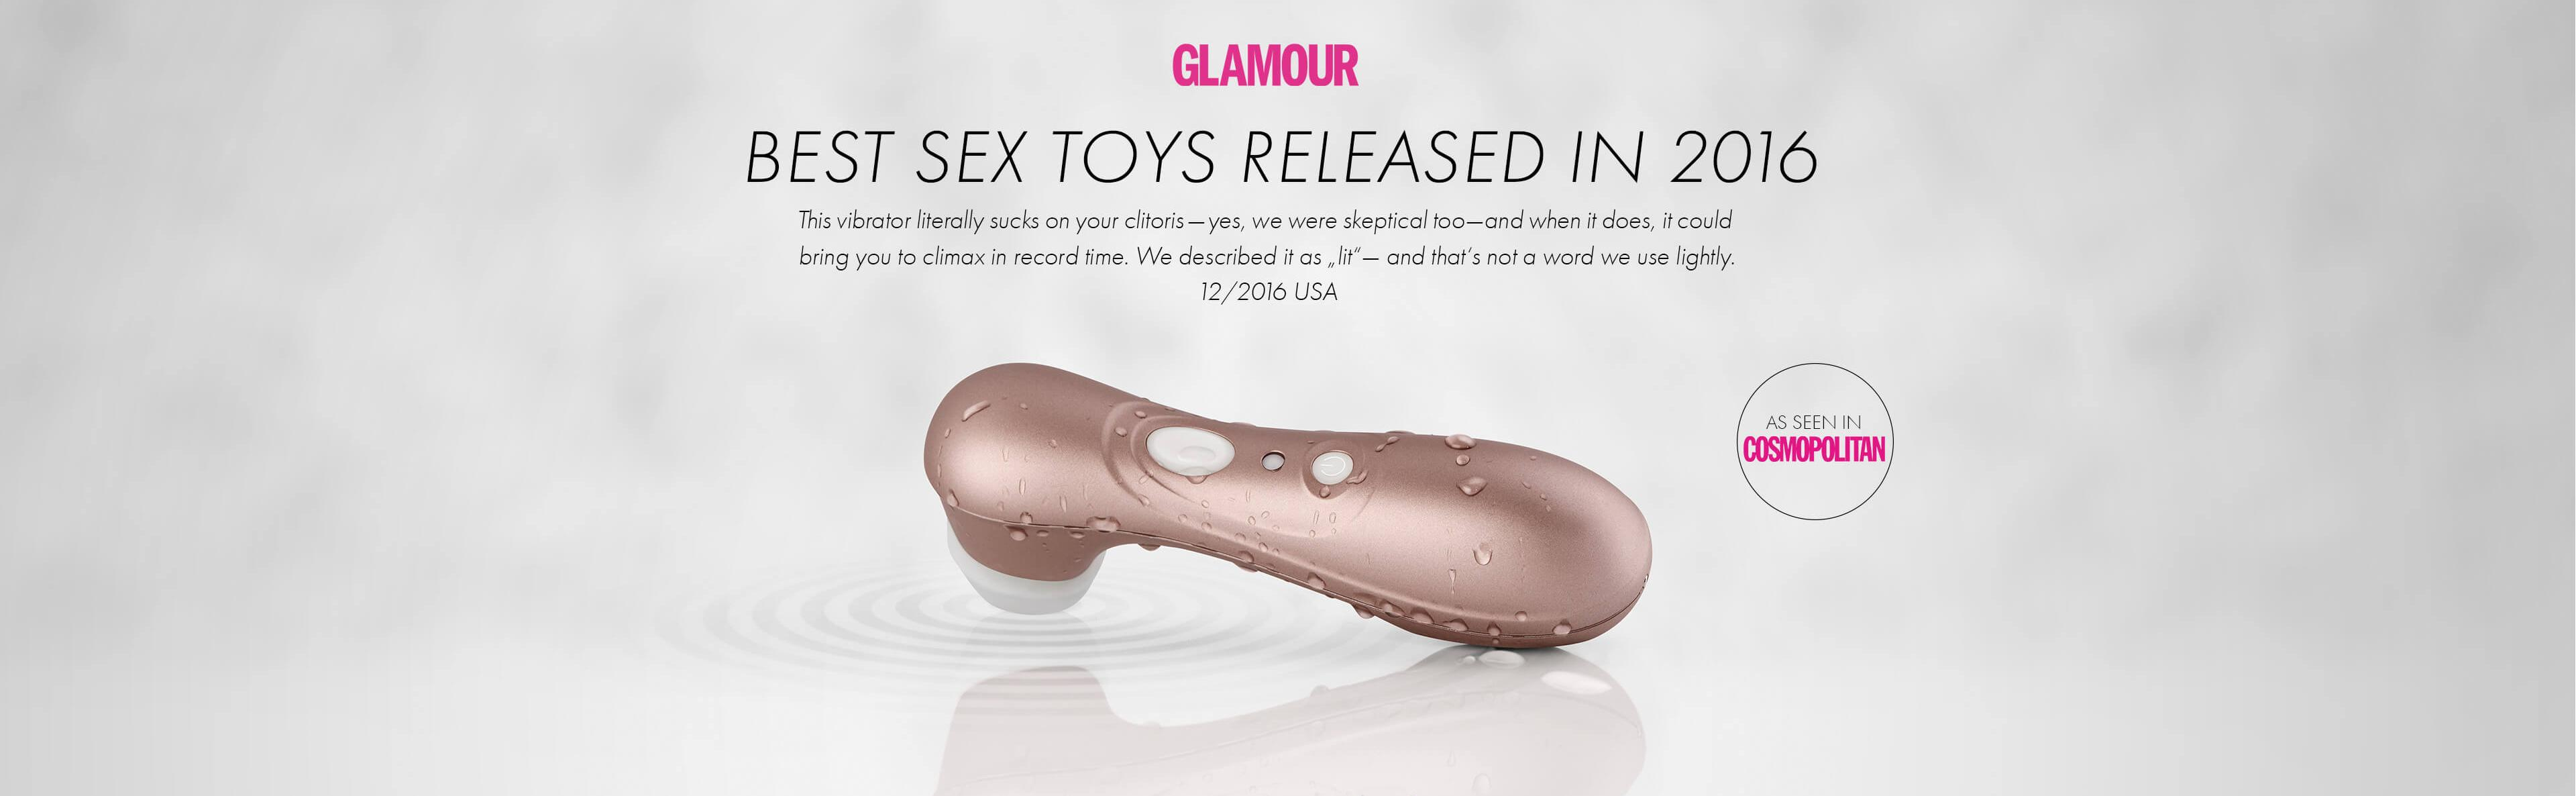 Sex toy suppliers in ireland